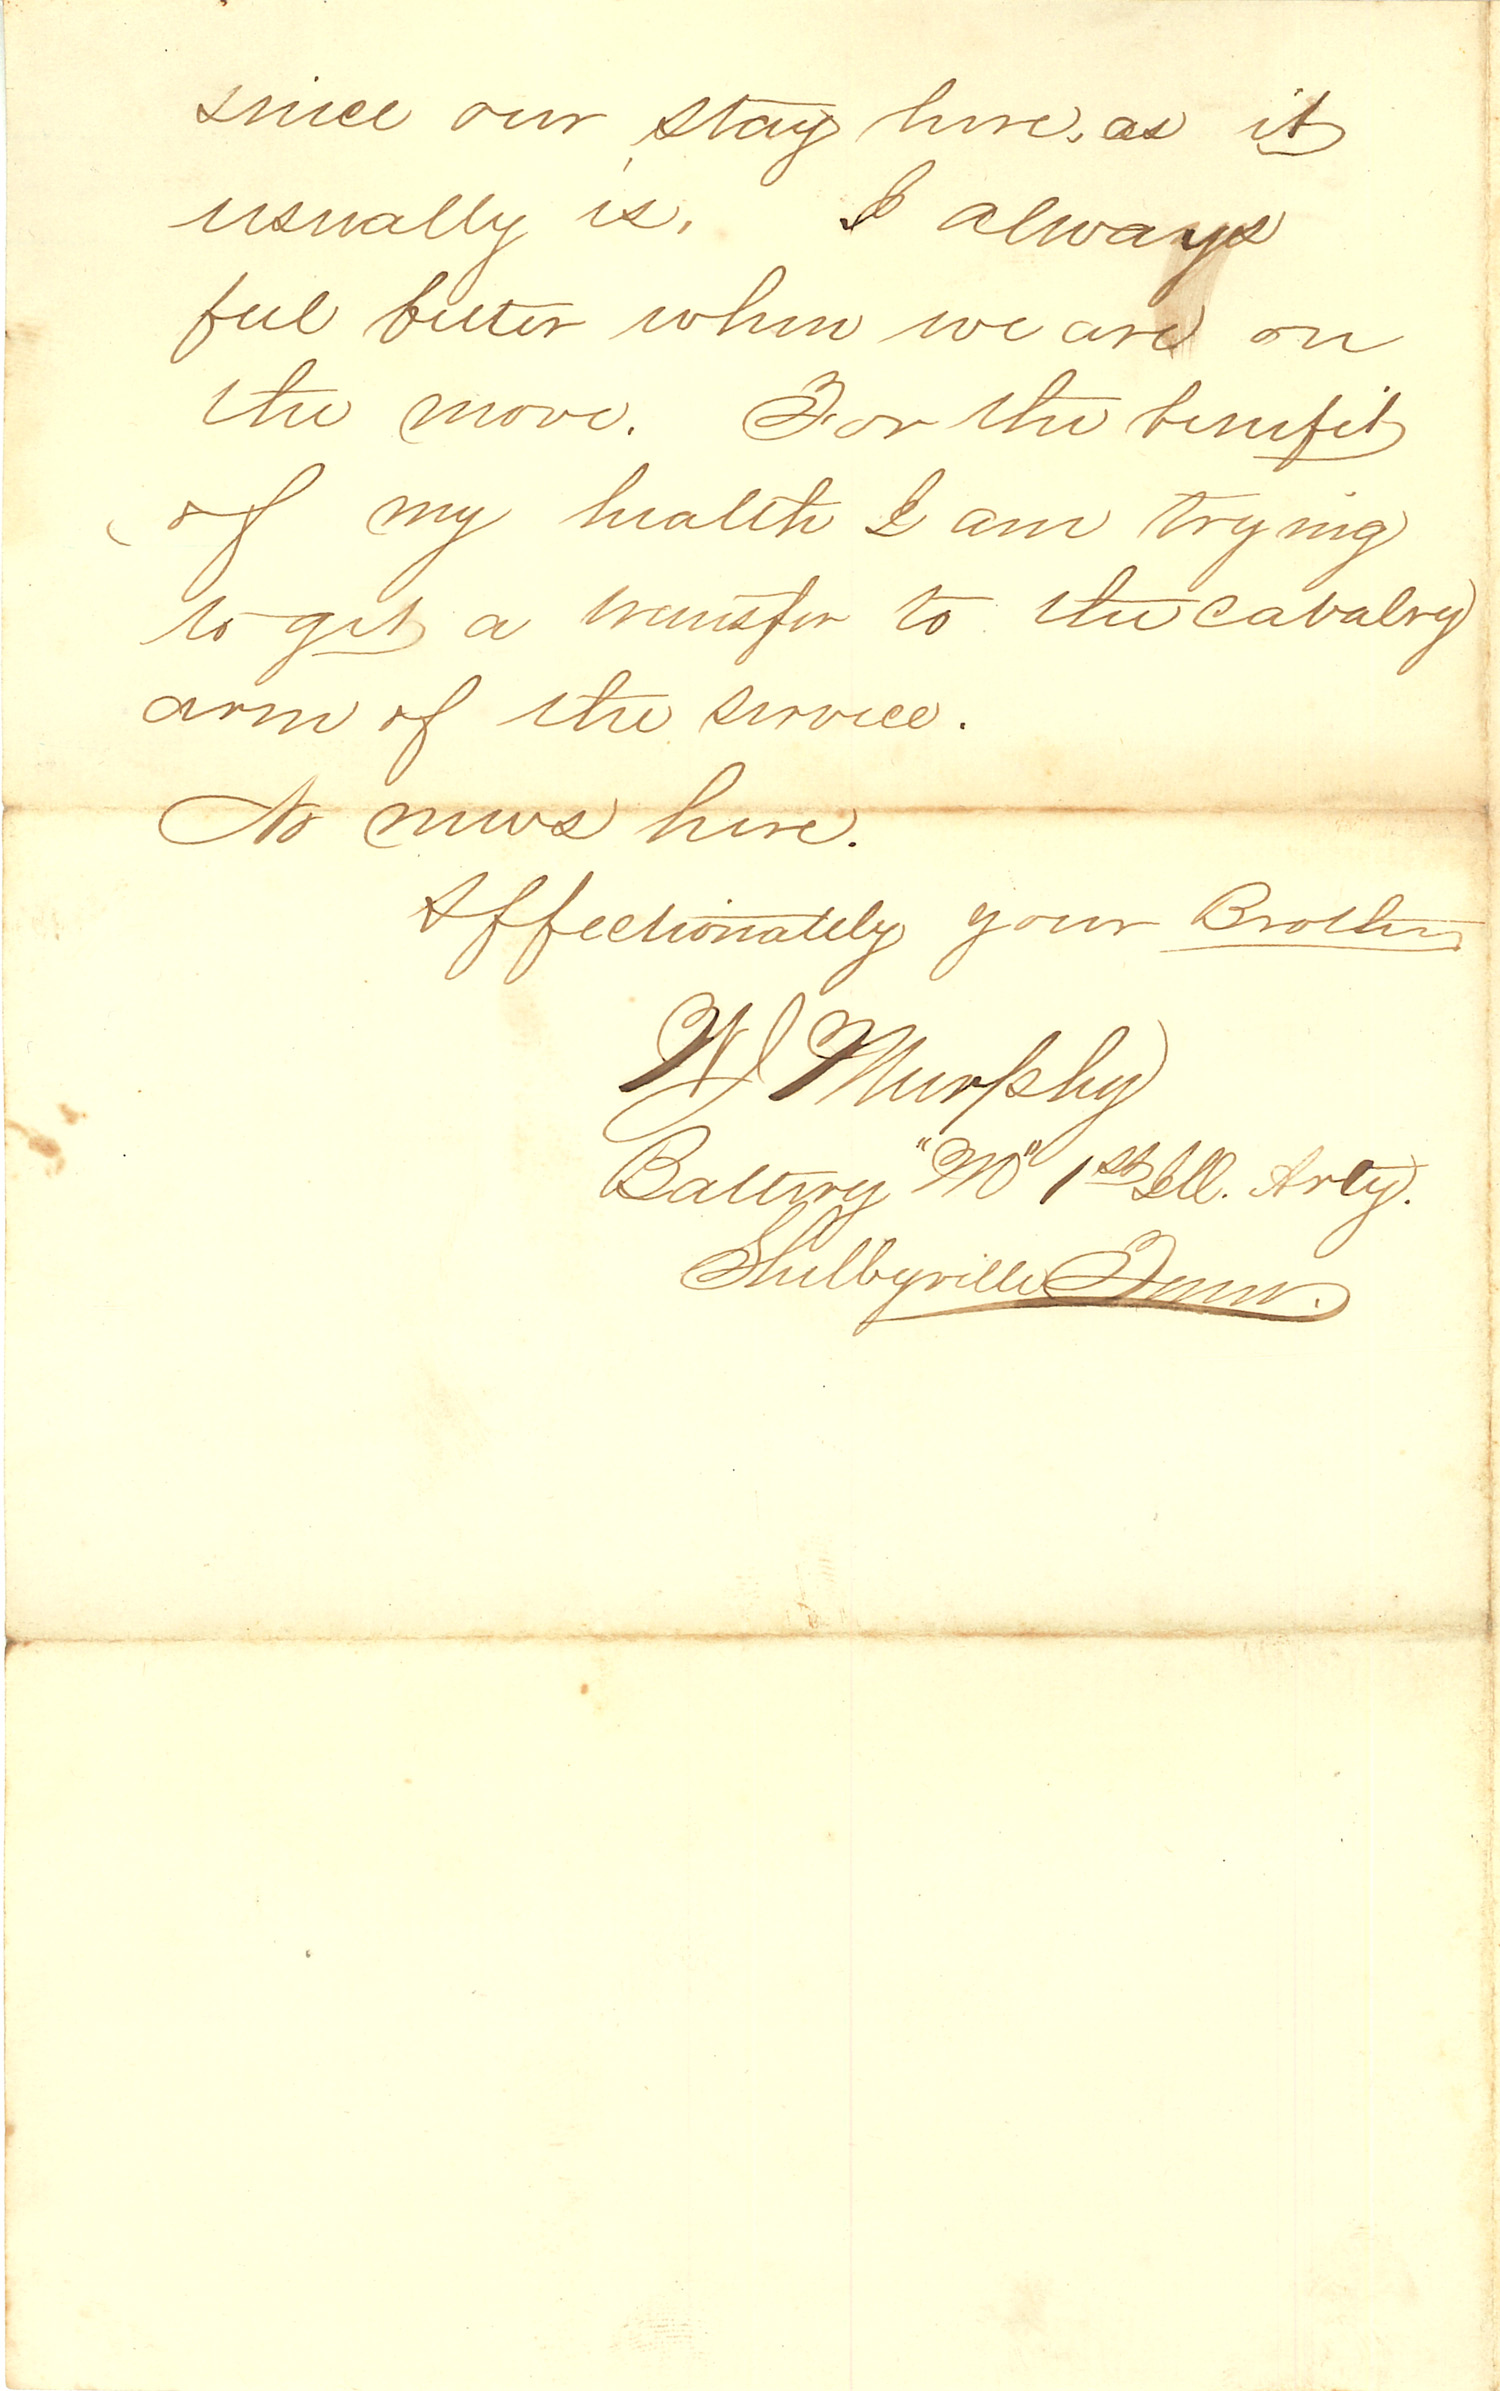 Joseph Culver Letter, August 1, 1863, Page 2